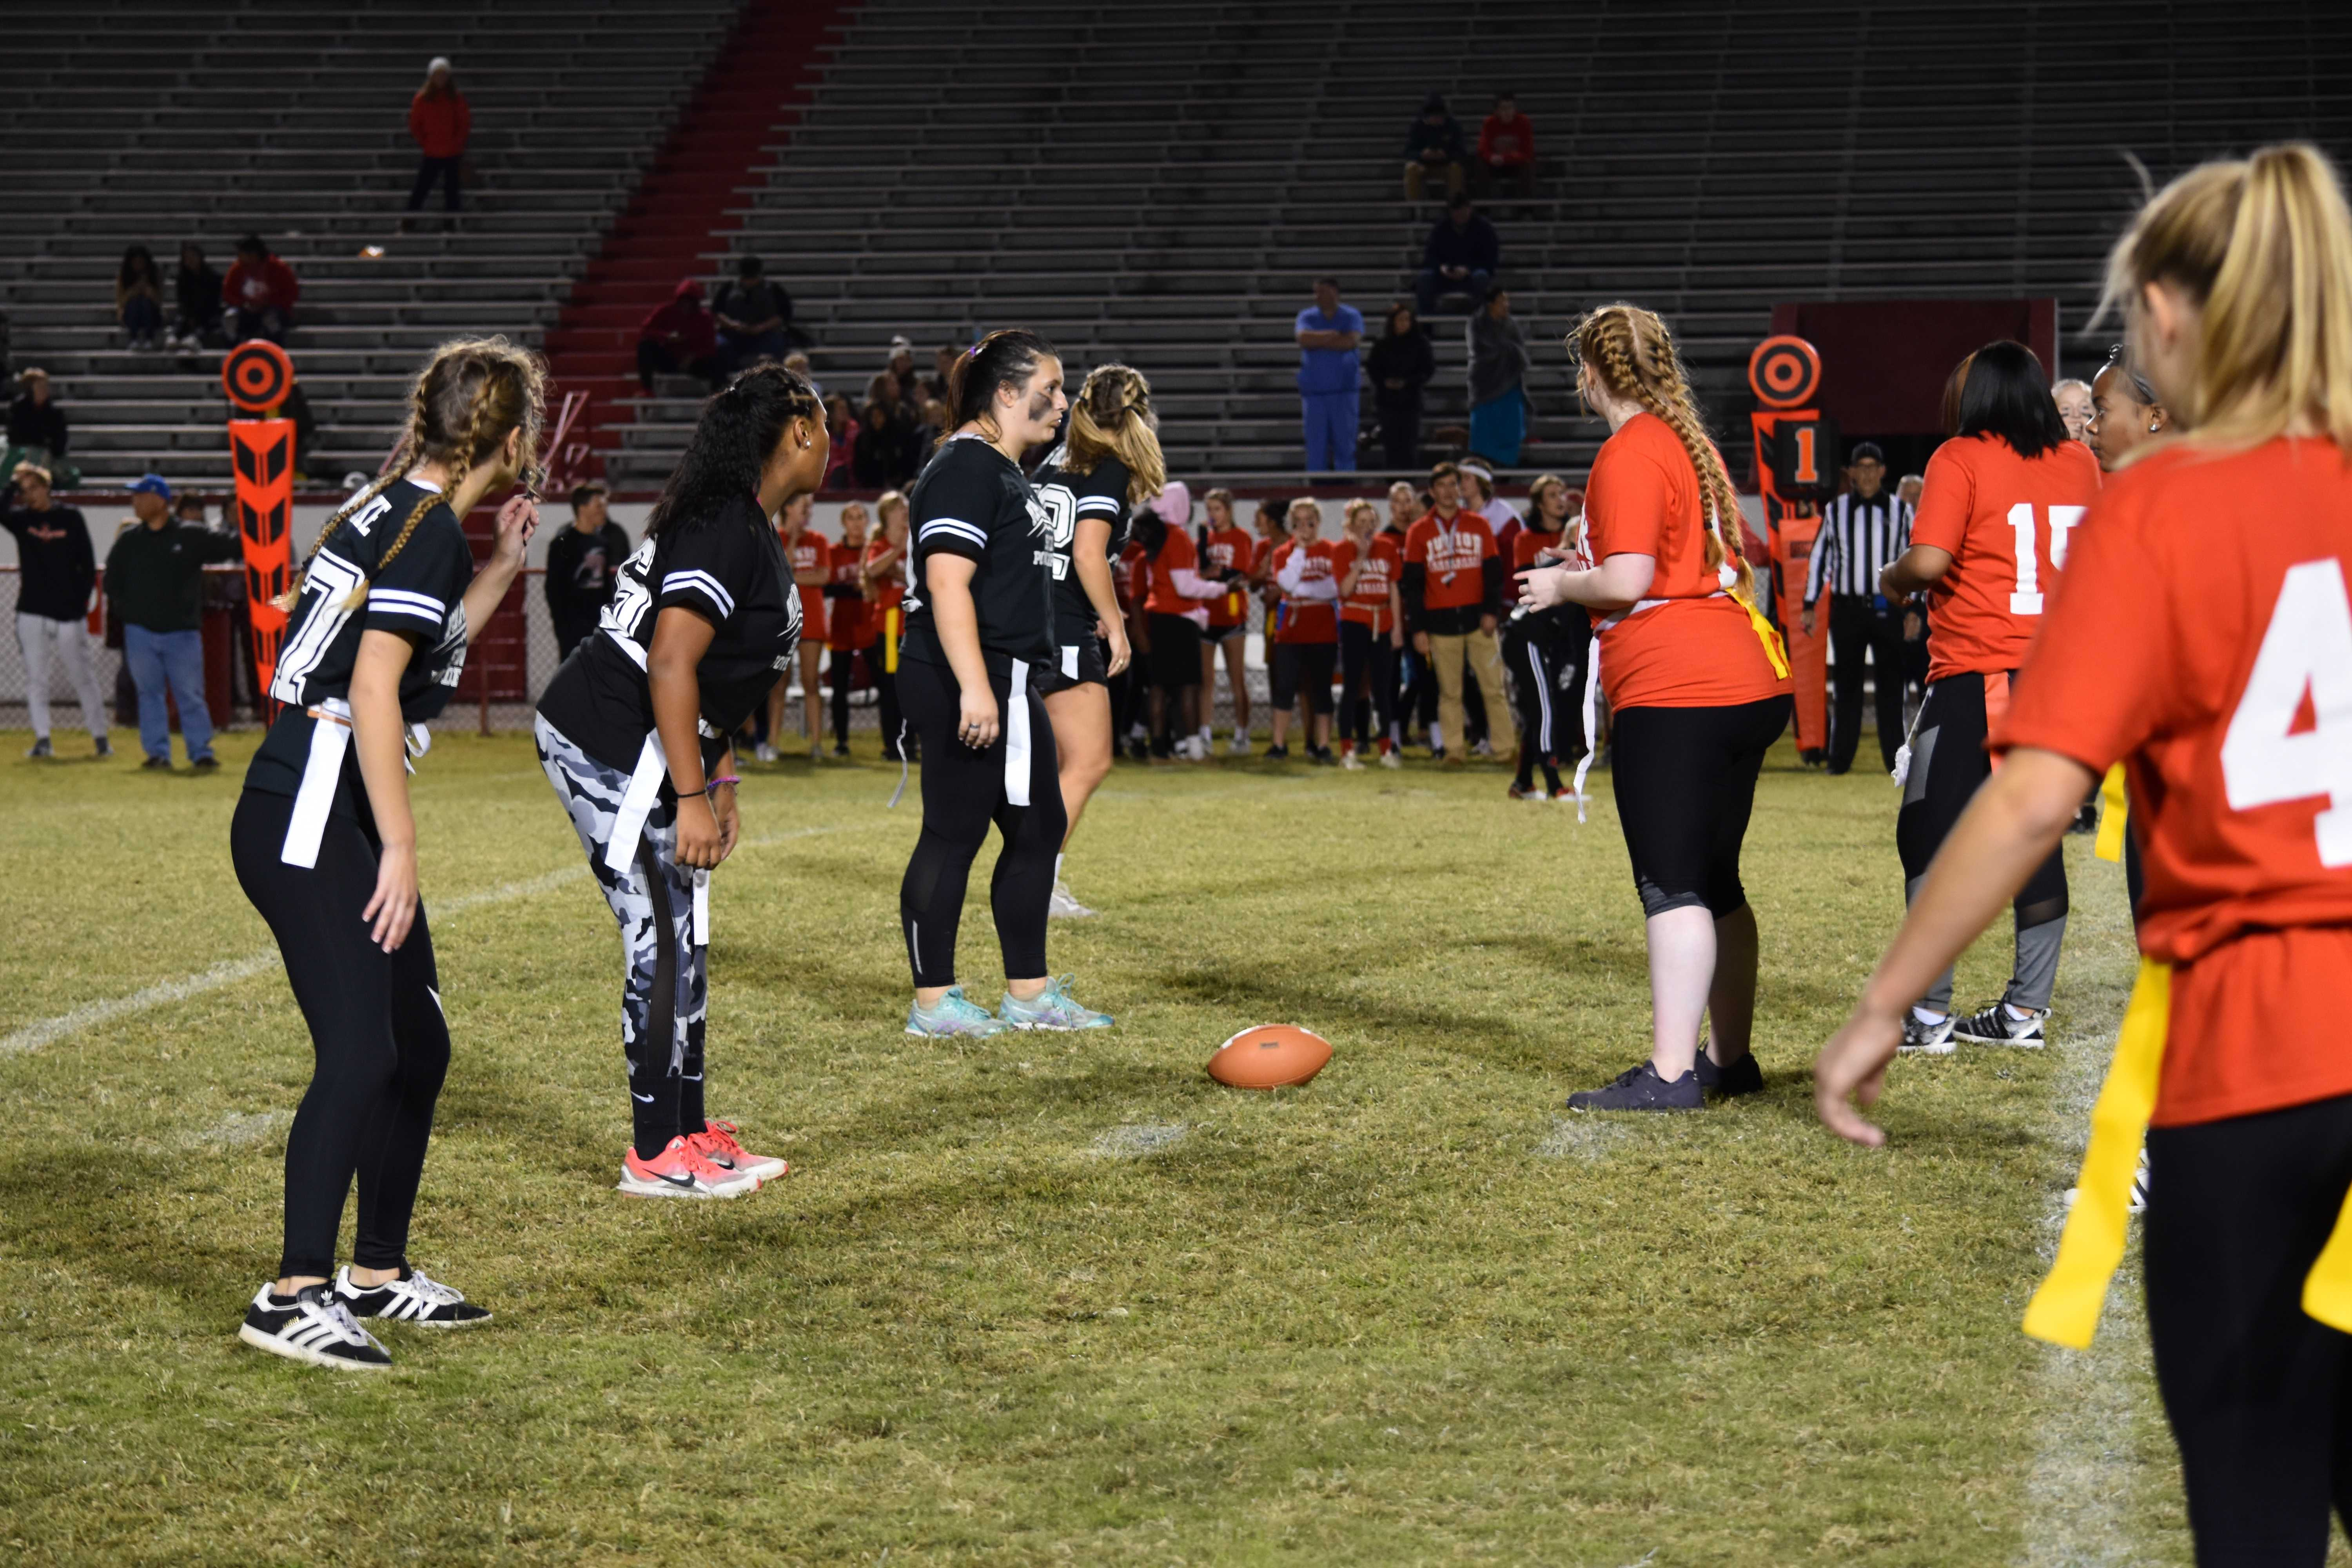 R/W Week 2018: Seniors seal the deal in powderpuff